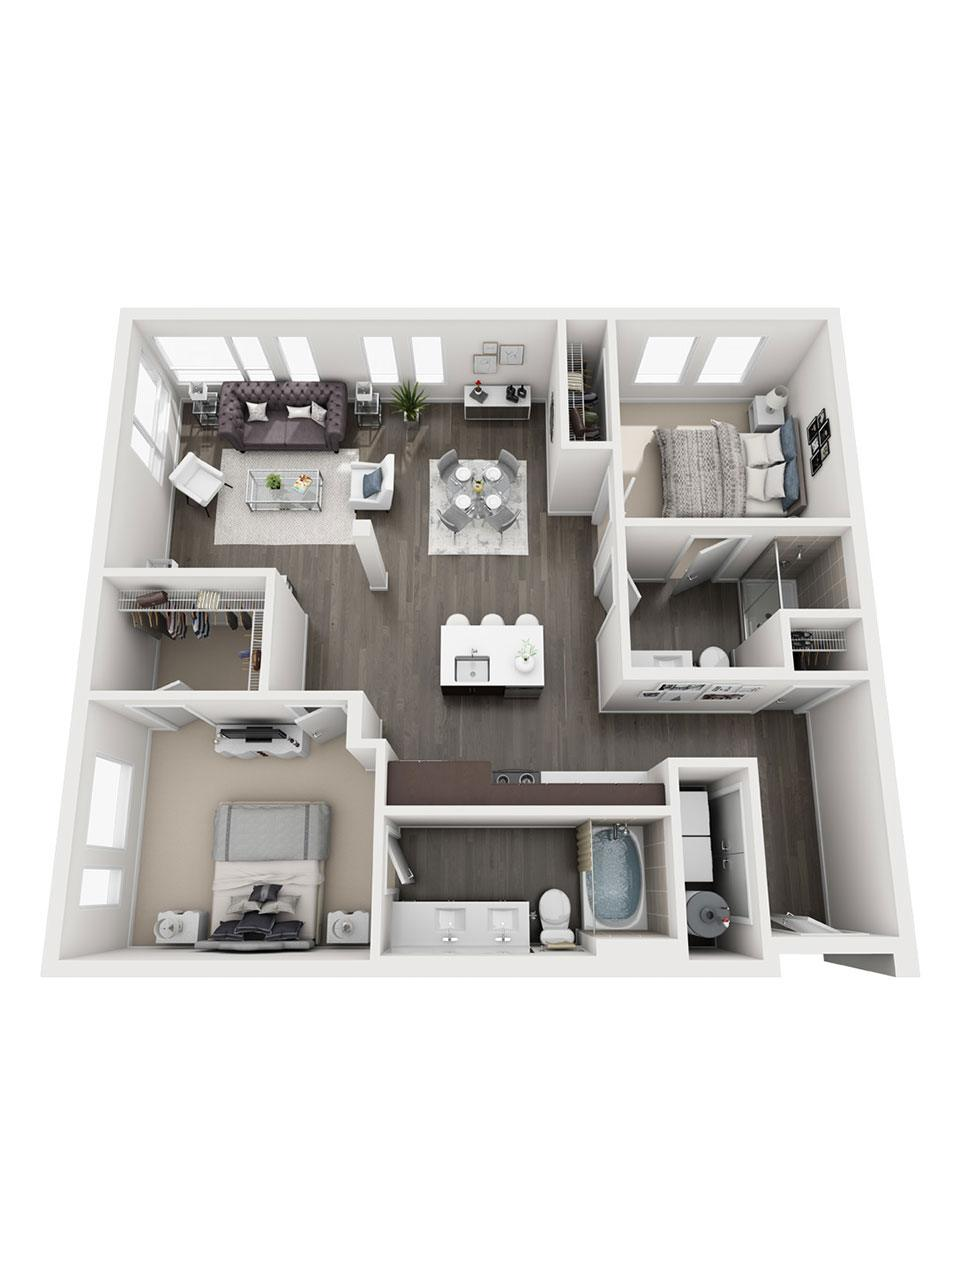 Plan 2 Bedroom – B2 | 2 Bath